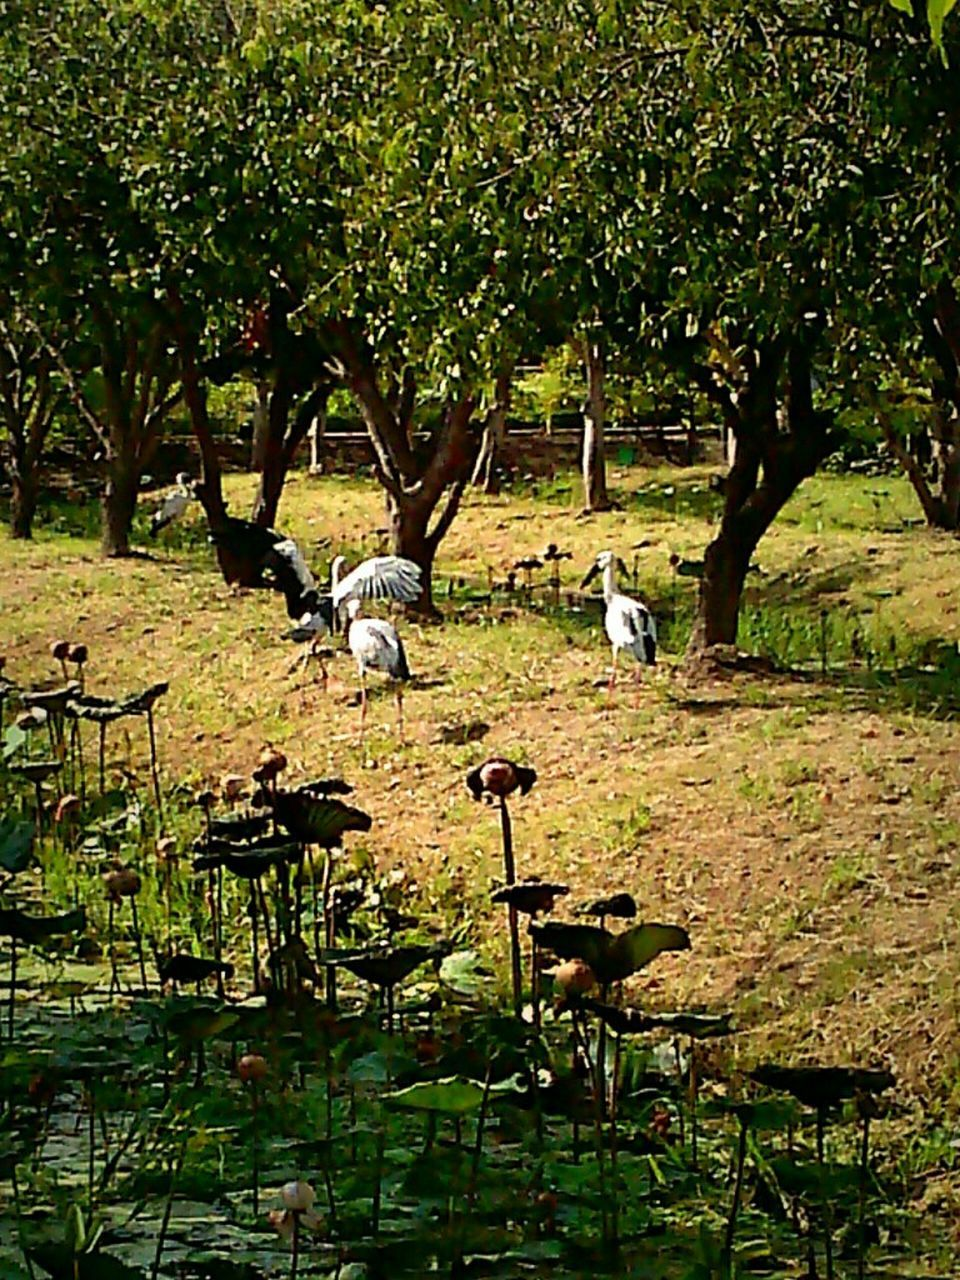 animal themes, animals in the wild, bird, tree, nature, animal wildlife, day, no people, outdoors, growth, lake, stork, large group of animals, beauty in nature, white stork, grass, mammal